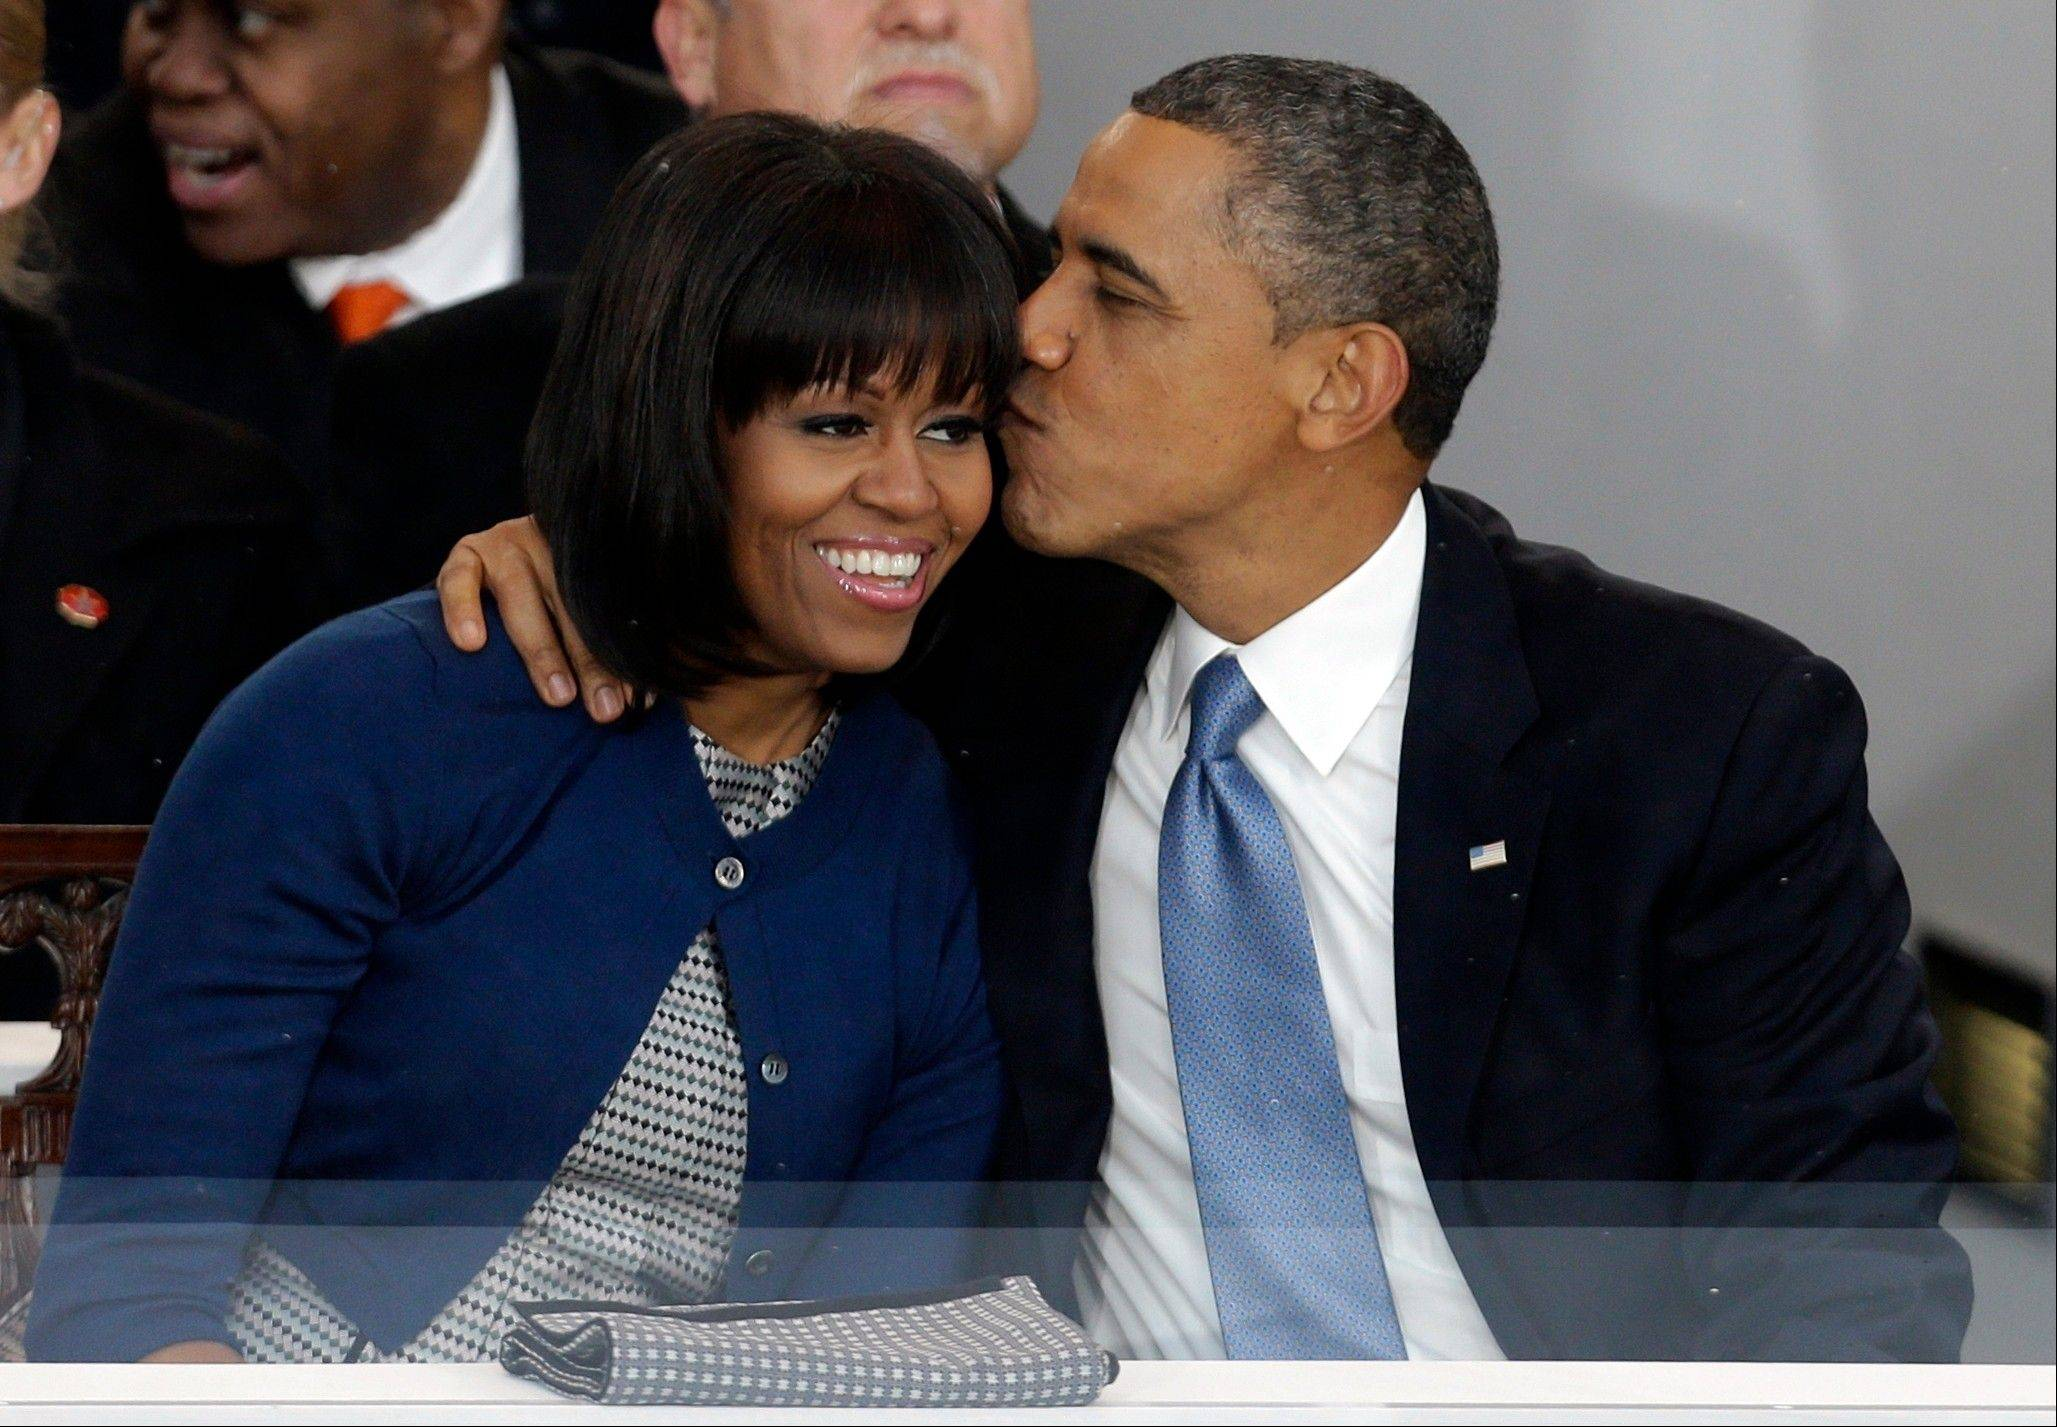 President Barack Obama kisses first lady Michelle Obama in the presidential box near the White House as bands march past the presidential box Monday during inauguration parade.